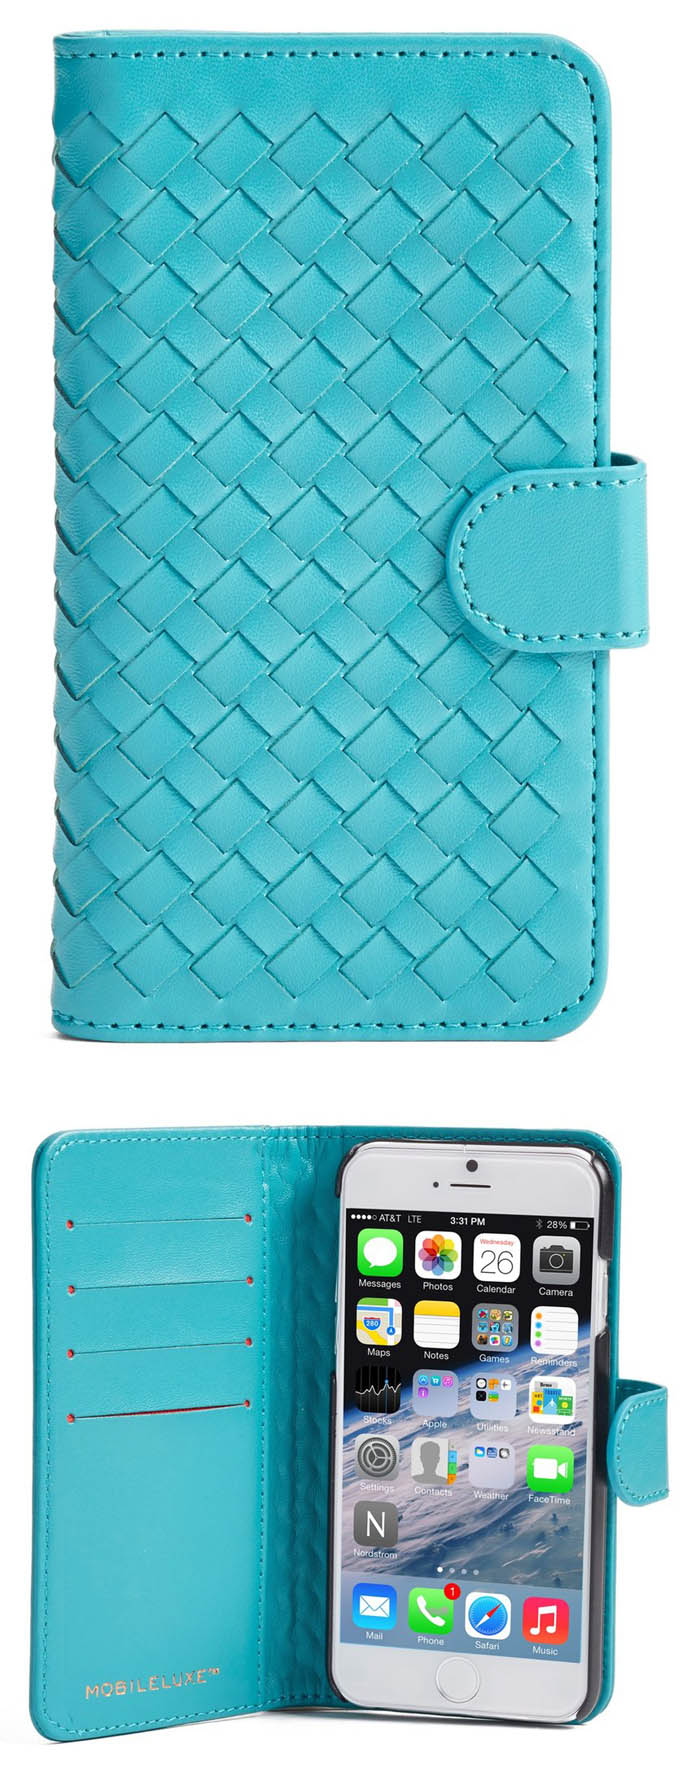 Teal Iphone 6 6s Wallet Case Everything Turquoise